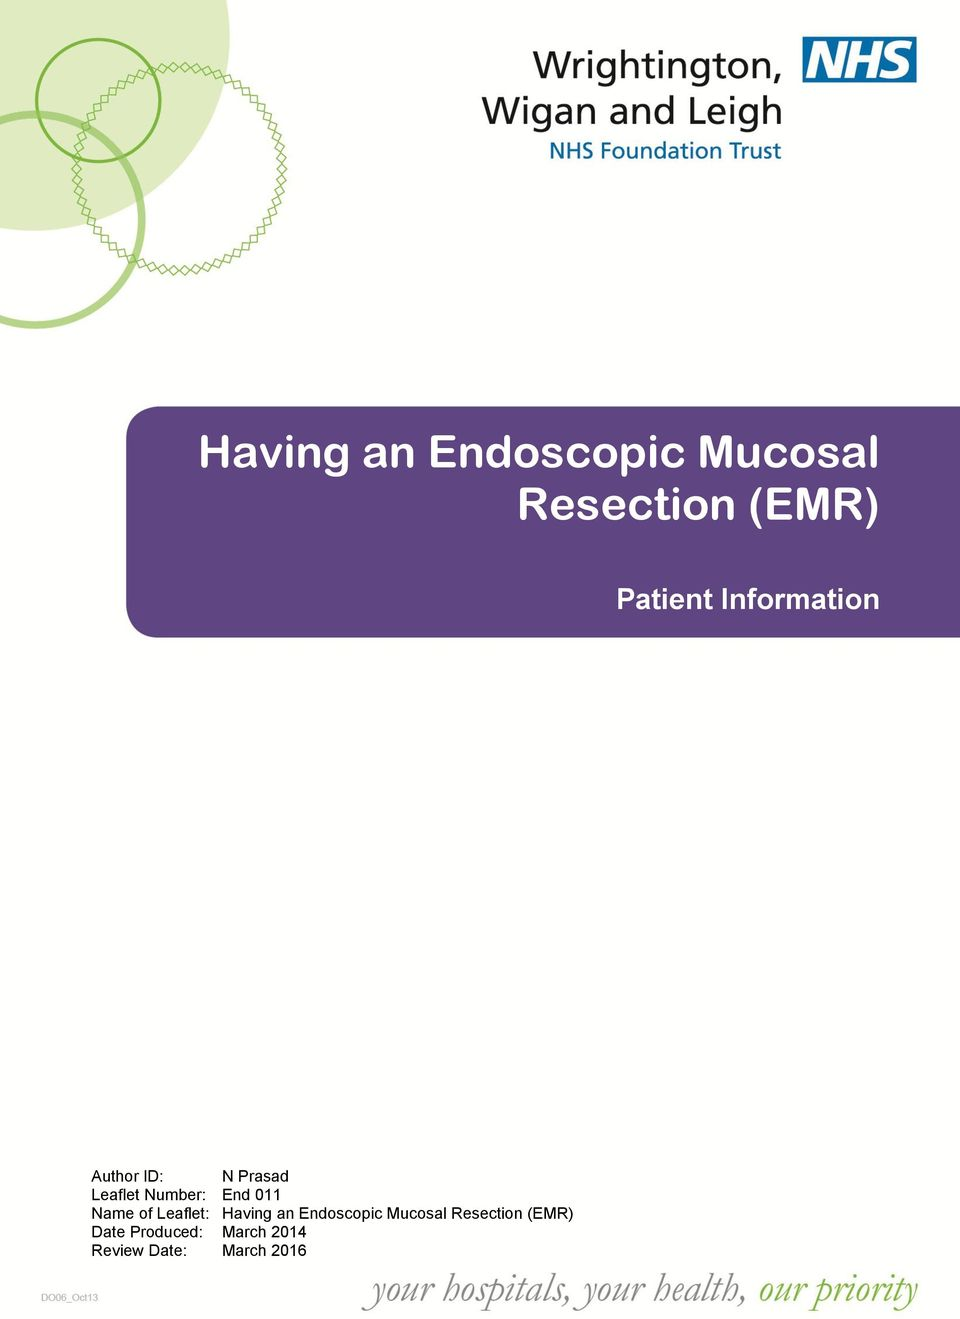 an Endoscopic Mucosal Resection (EMR) Date Produced: March 2014